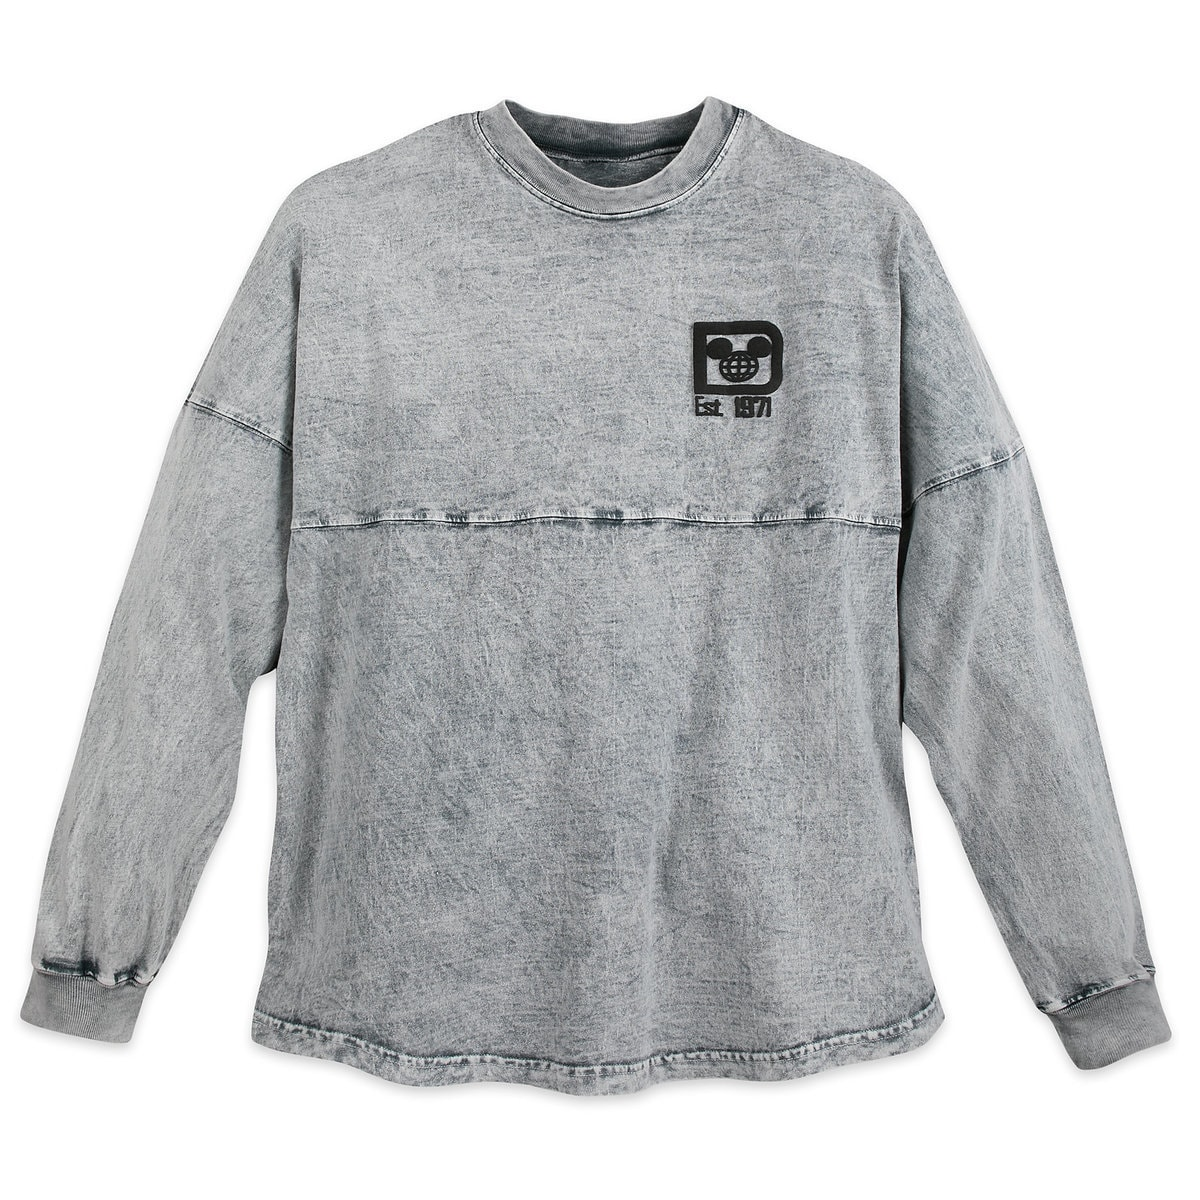 f91c38b7868 Product Image of Walt Disney World Mineral Wash Spirit Jersey for Adults -  Gray # 1